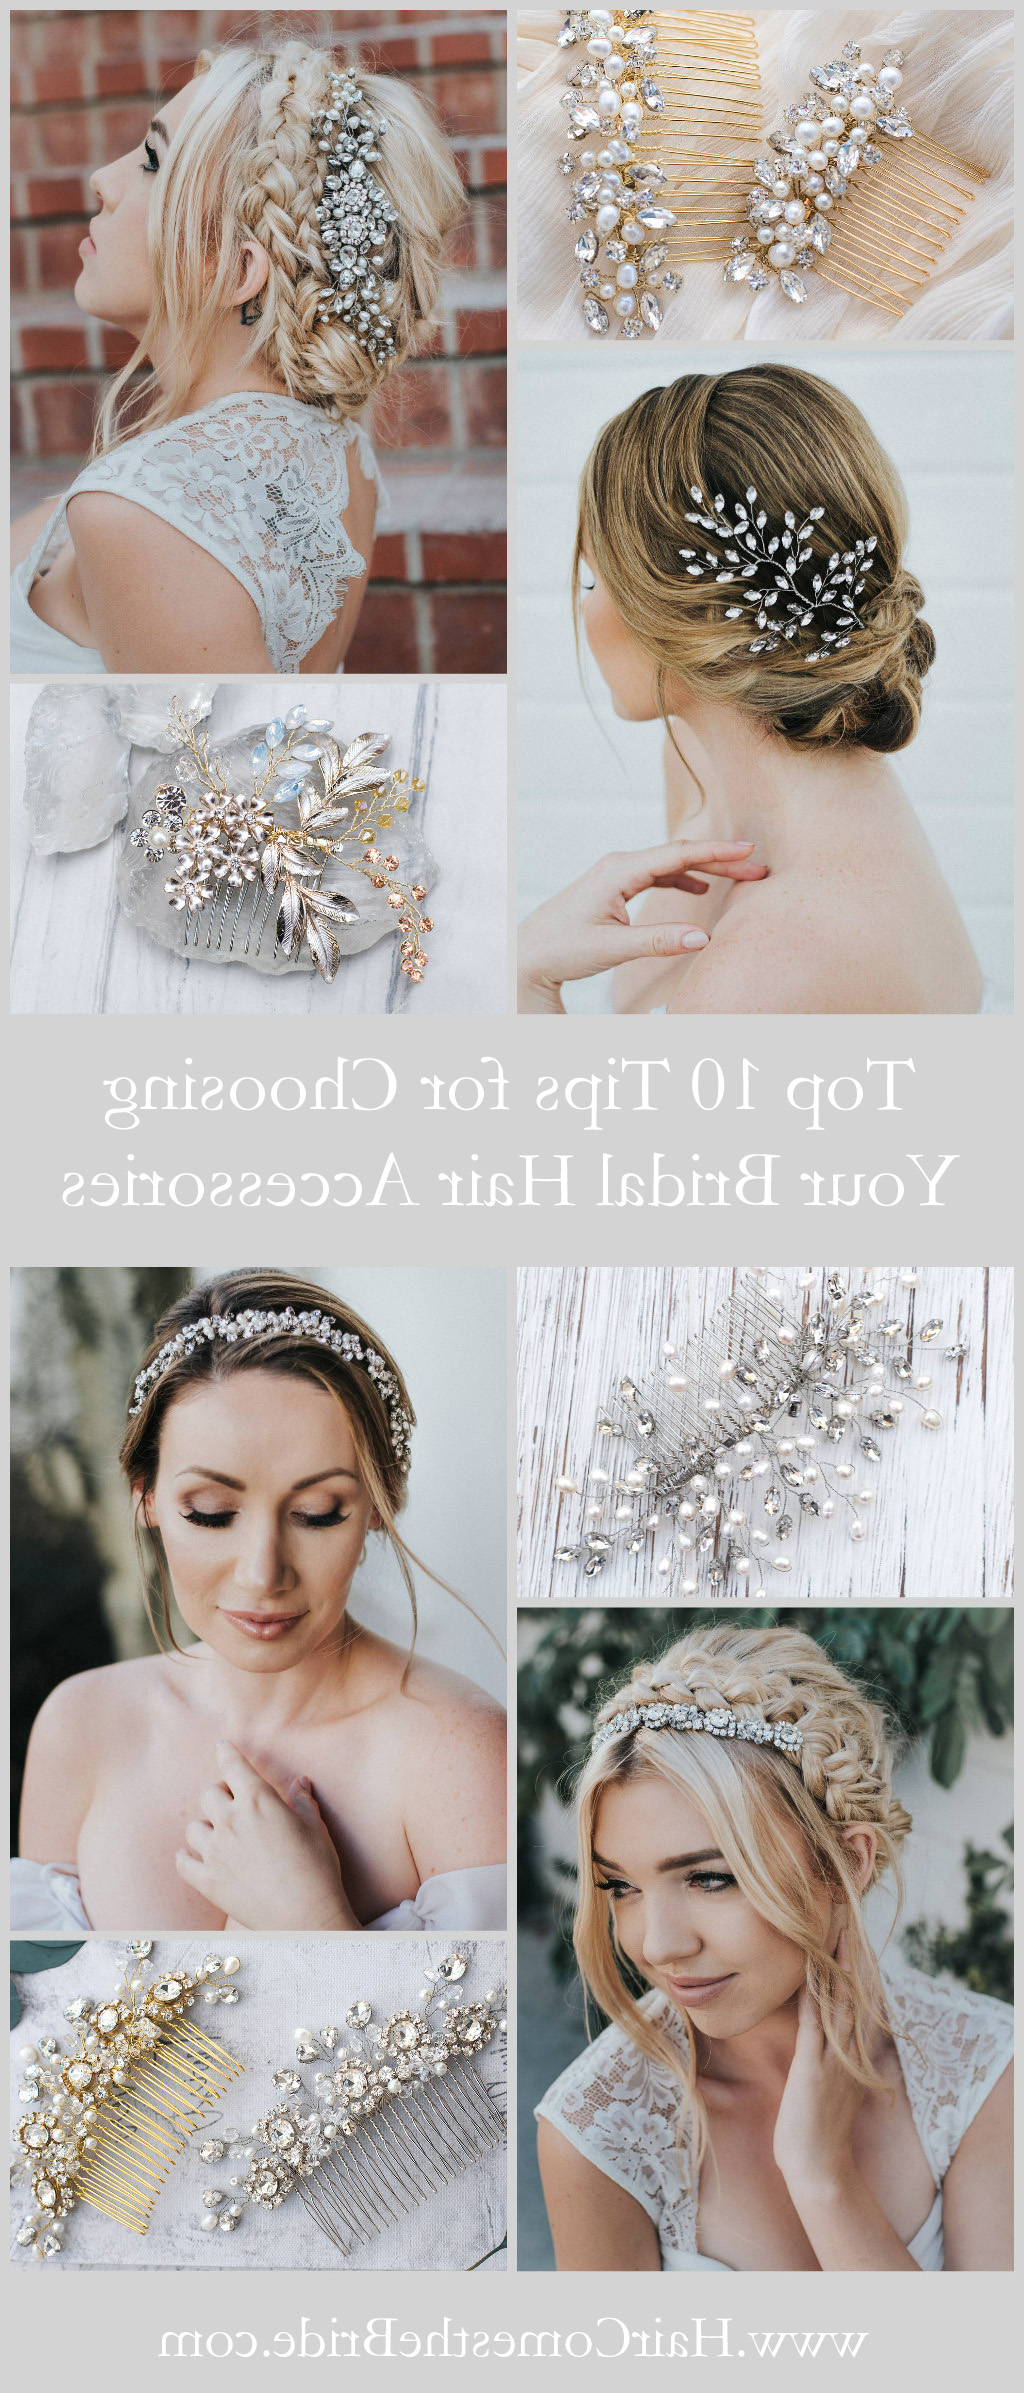 Popular Classic Bridal Hairstyles With Veil And Tiara Throughout Top 10 Tips For Choosing Your Bridal Hair Accessories – Hair Comes (View 6 of 20)